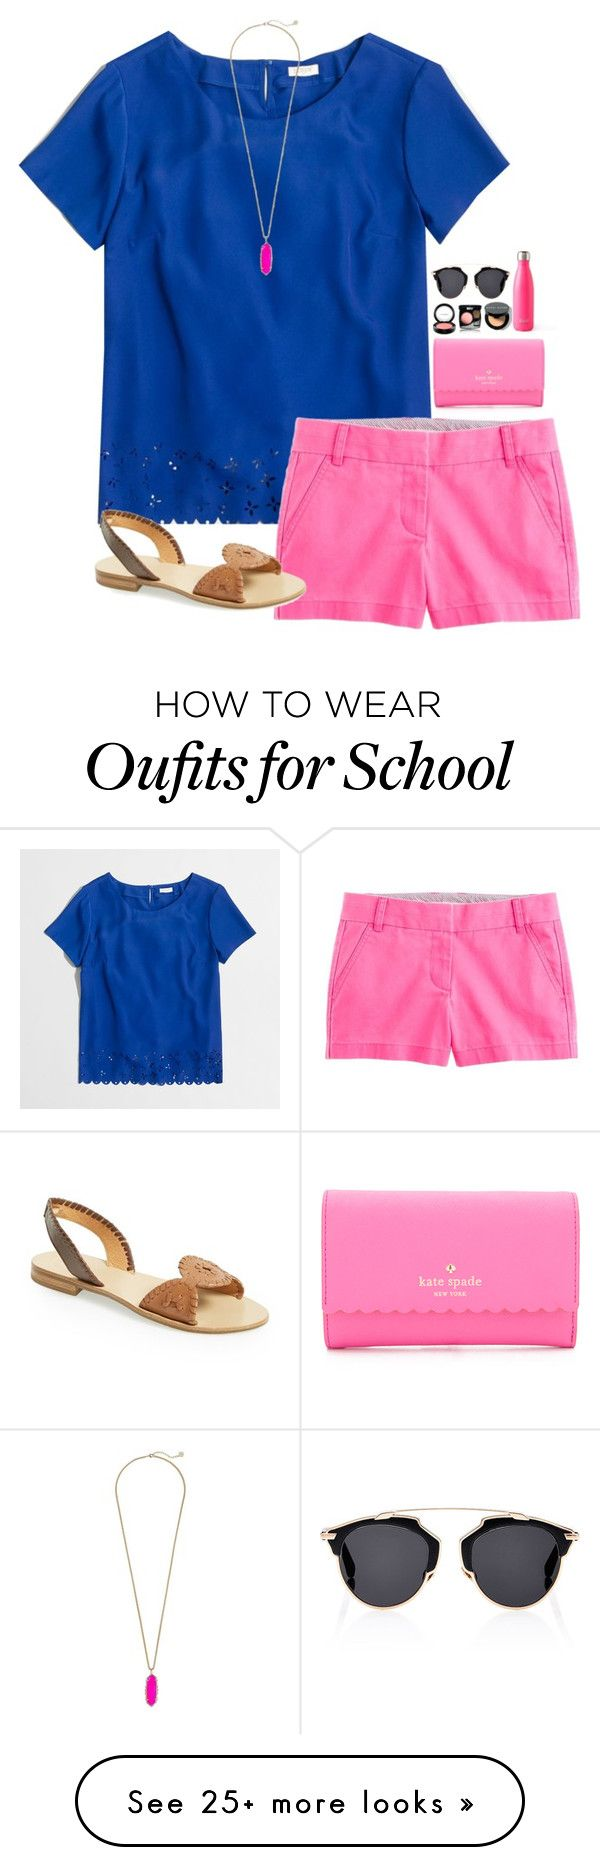 """"""" @school"""" by leawhite on Polyvore featuring J.Crew, Kate Spade, MAC Cosmetics, Chanel, Bobbi Brown Cosmetics, Jack Rogers, S'well, Christian Dior and Kendra Scott"""